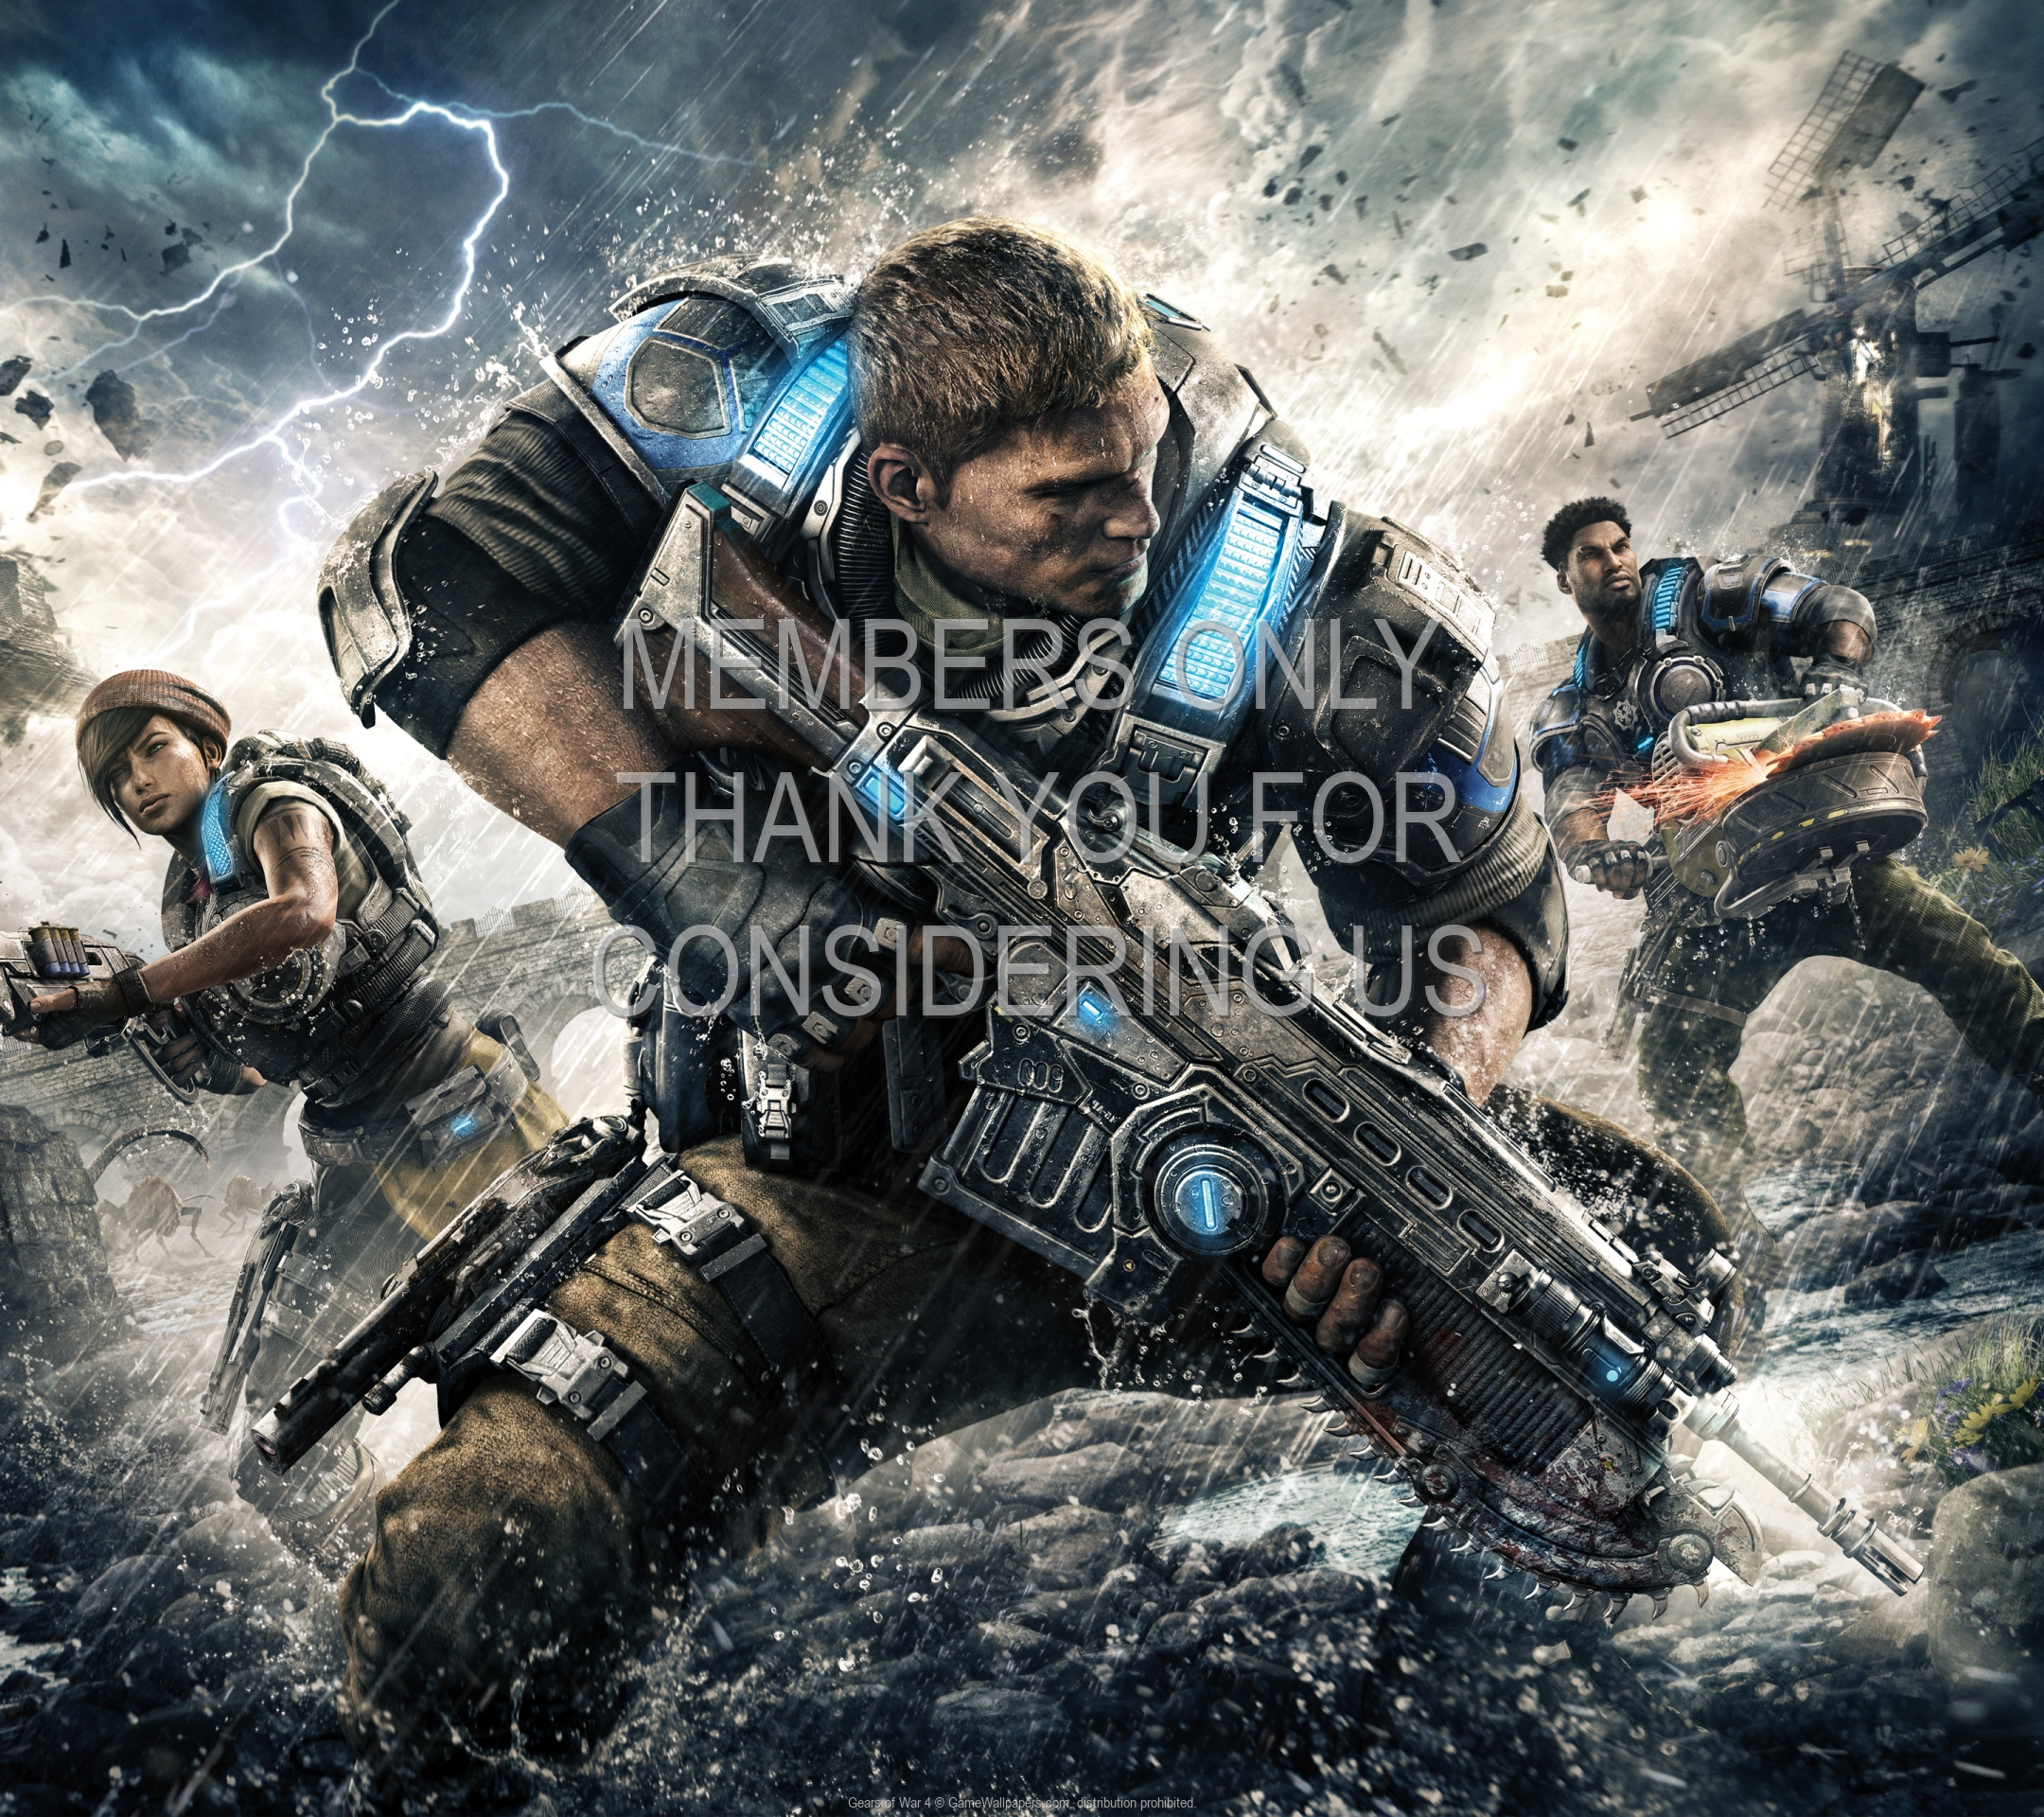 Gears of War 4 1920x1080 Mobile wallpaper or background 02